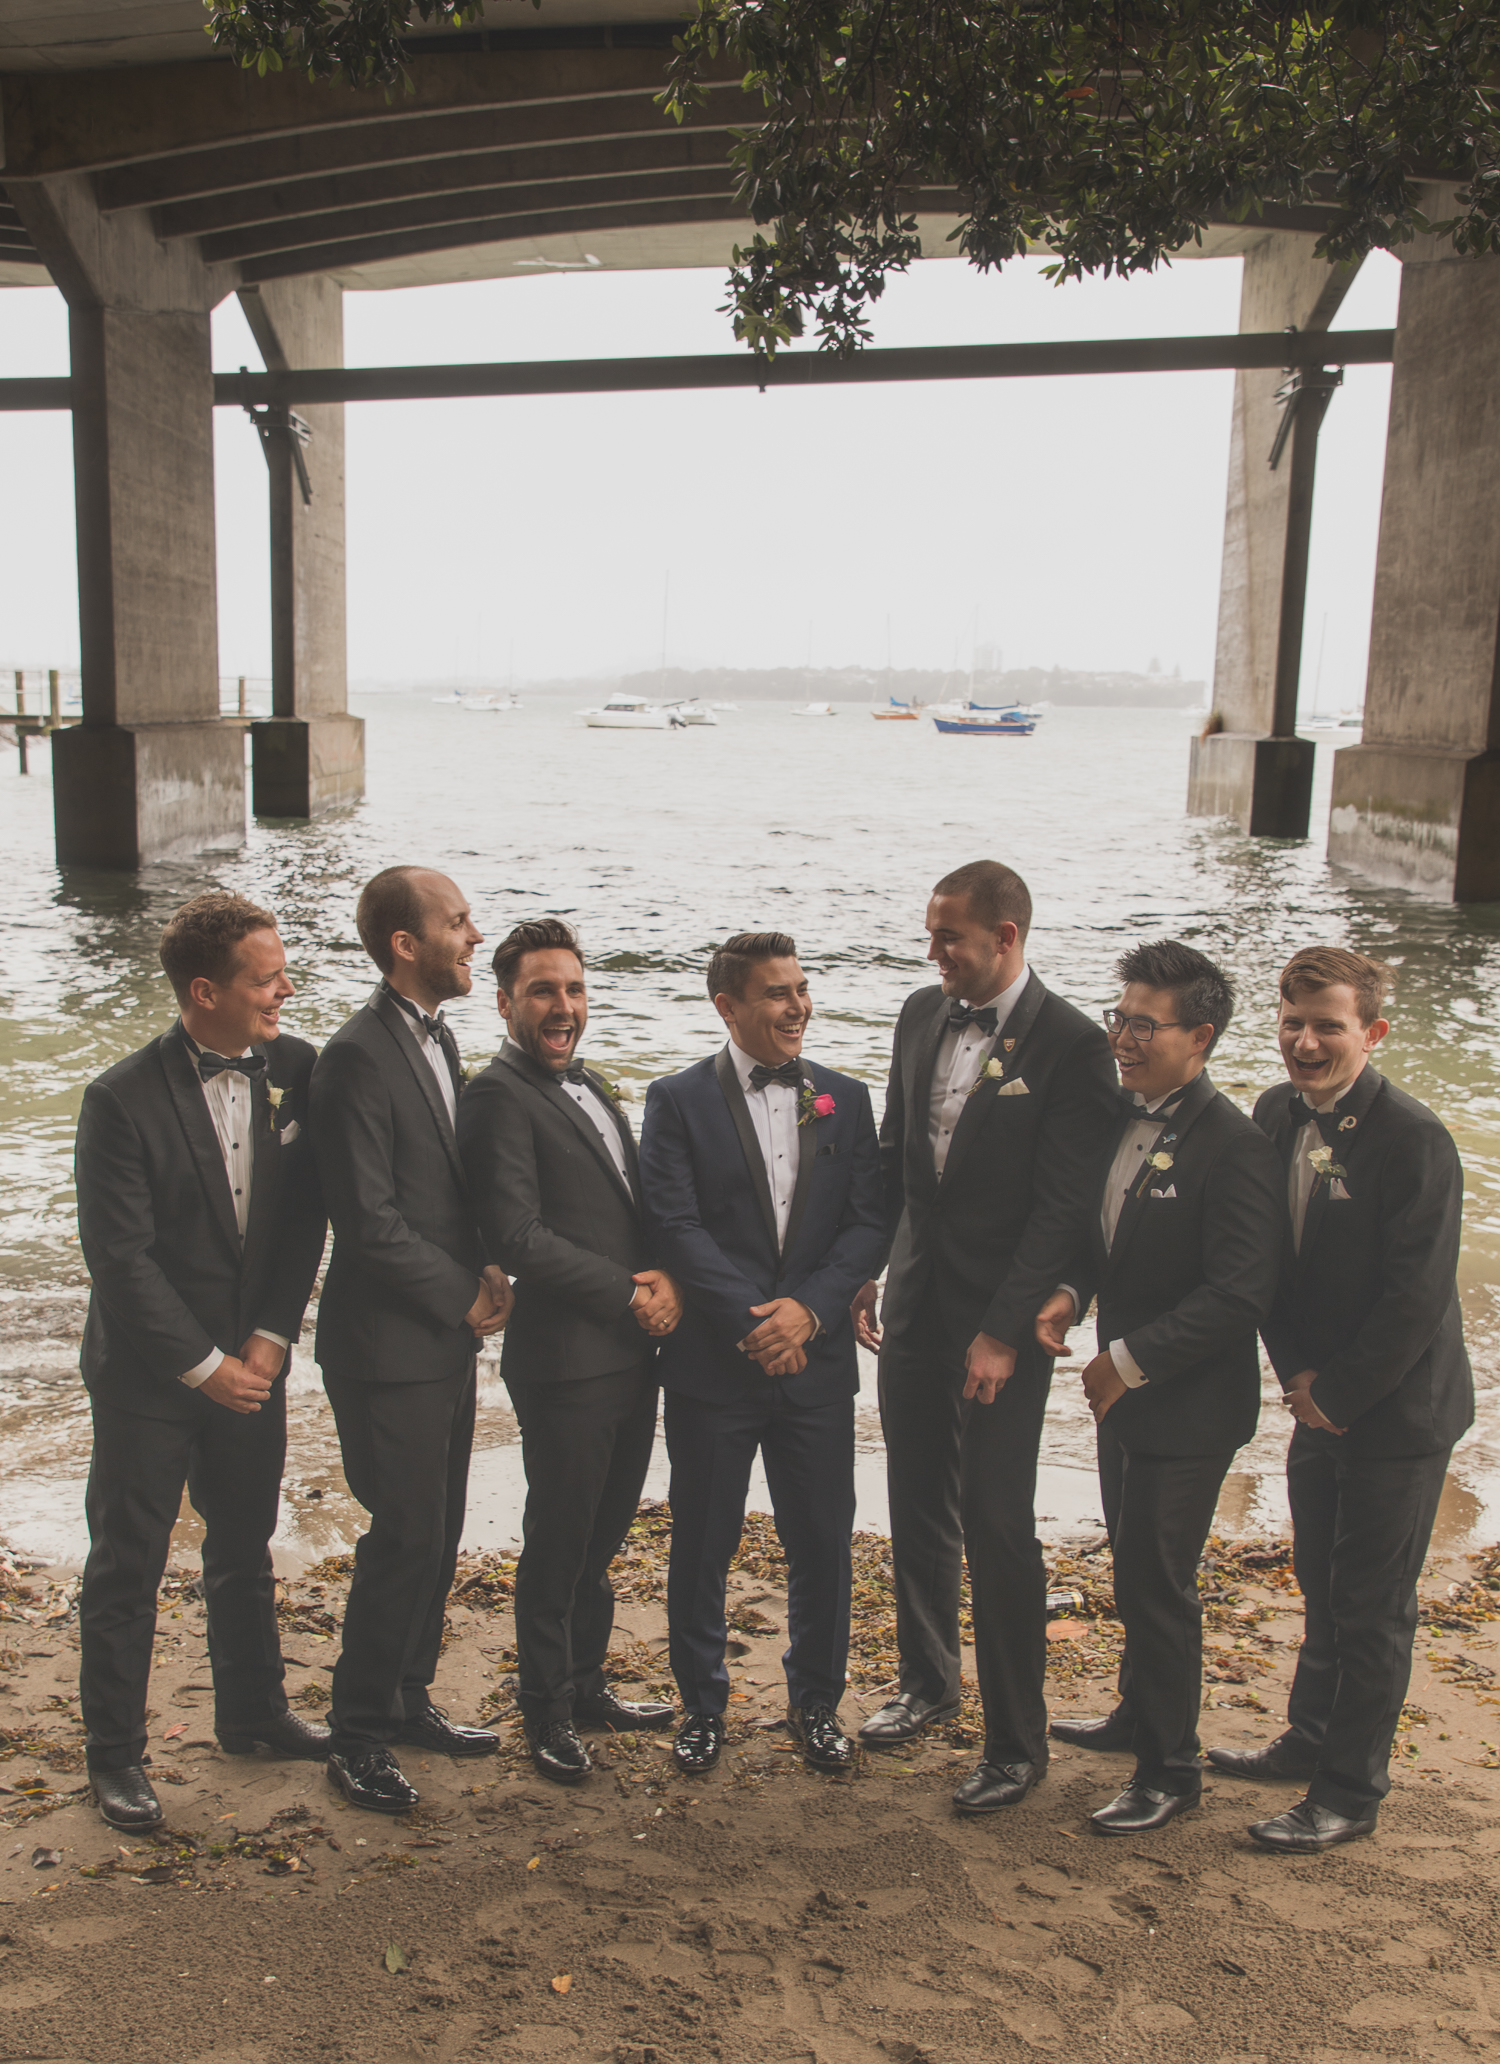 groom and groomsmen on wedding day